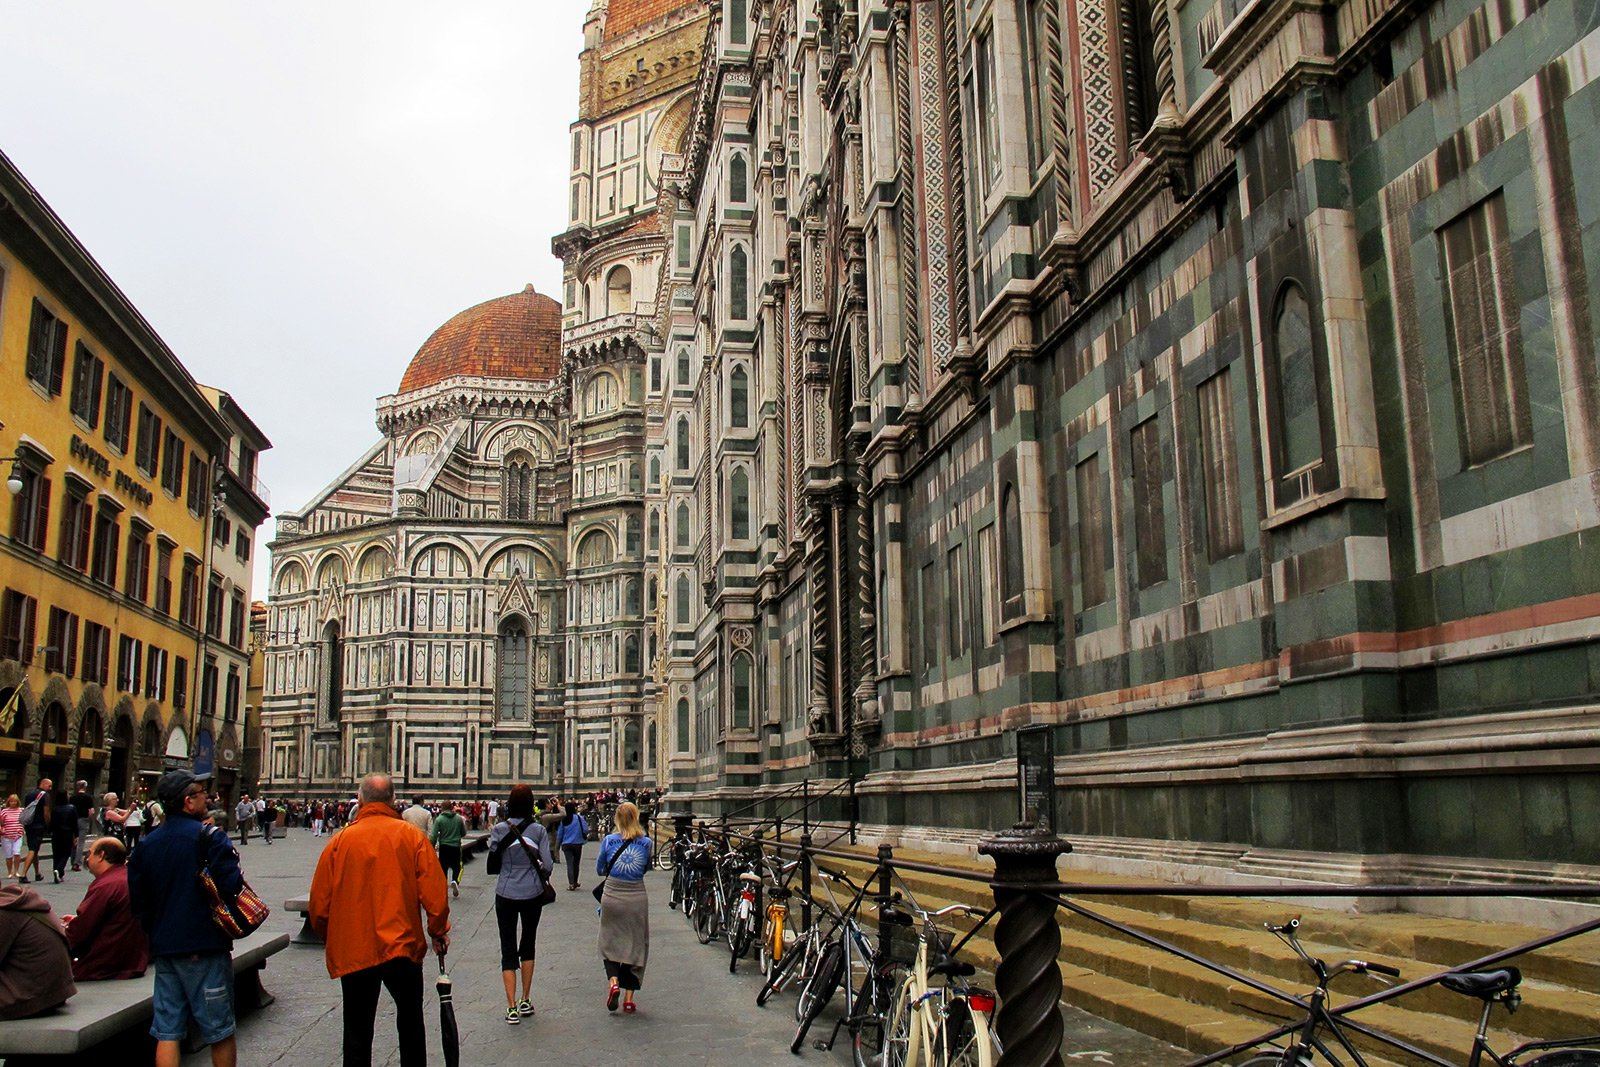 How to walk around Piazza Duomo in Florence